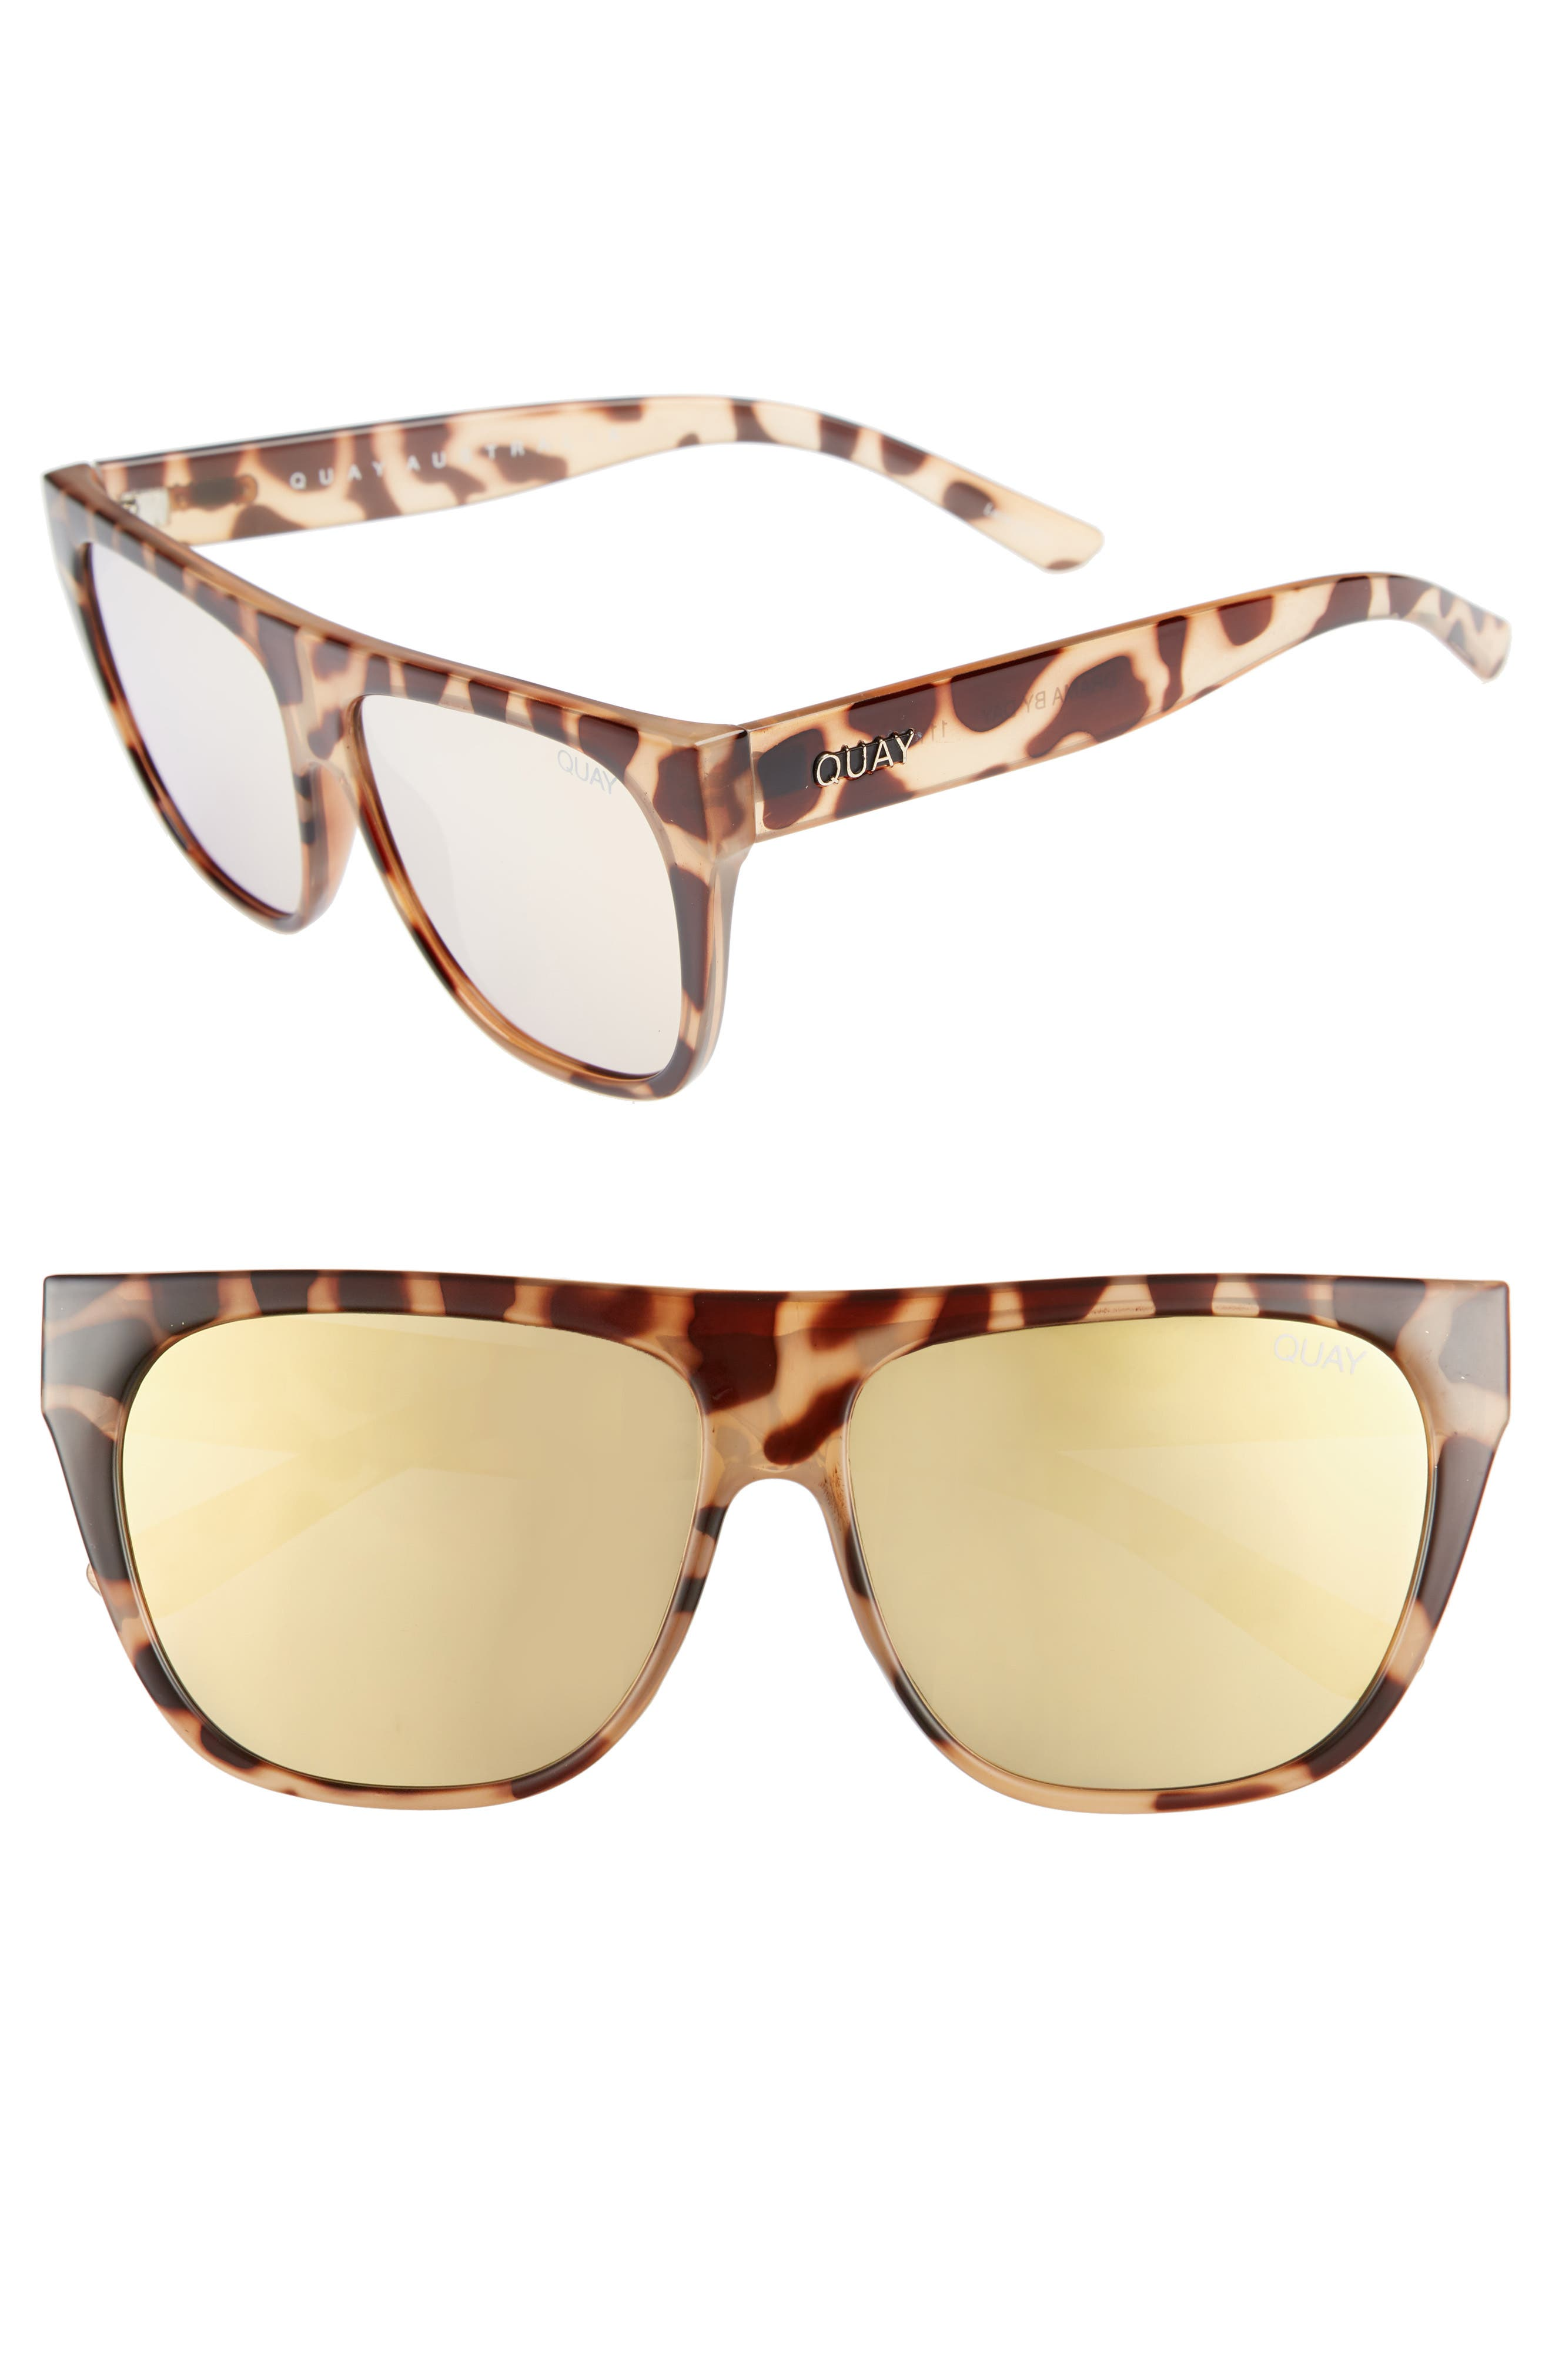 Drama by Day 55mm Square Sunglasses,                         Main,                         color, TORT/ GOLD